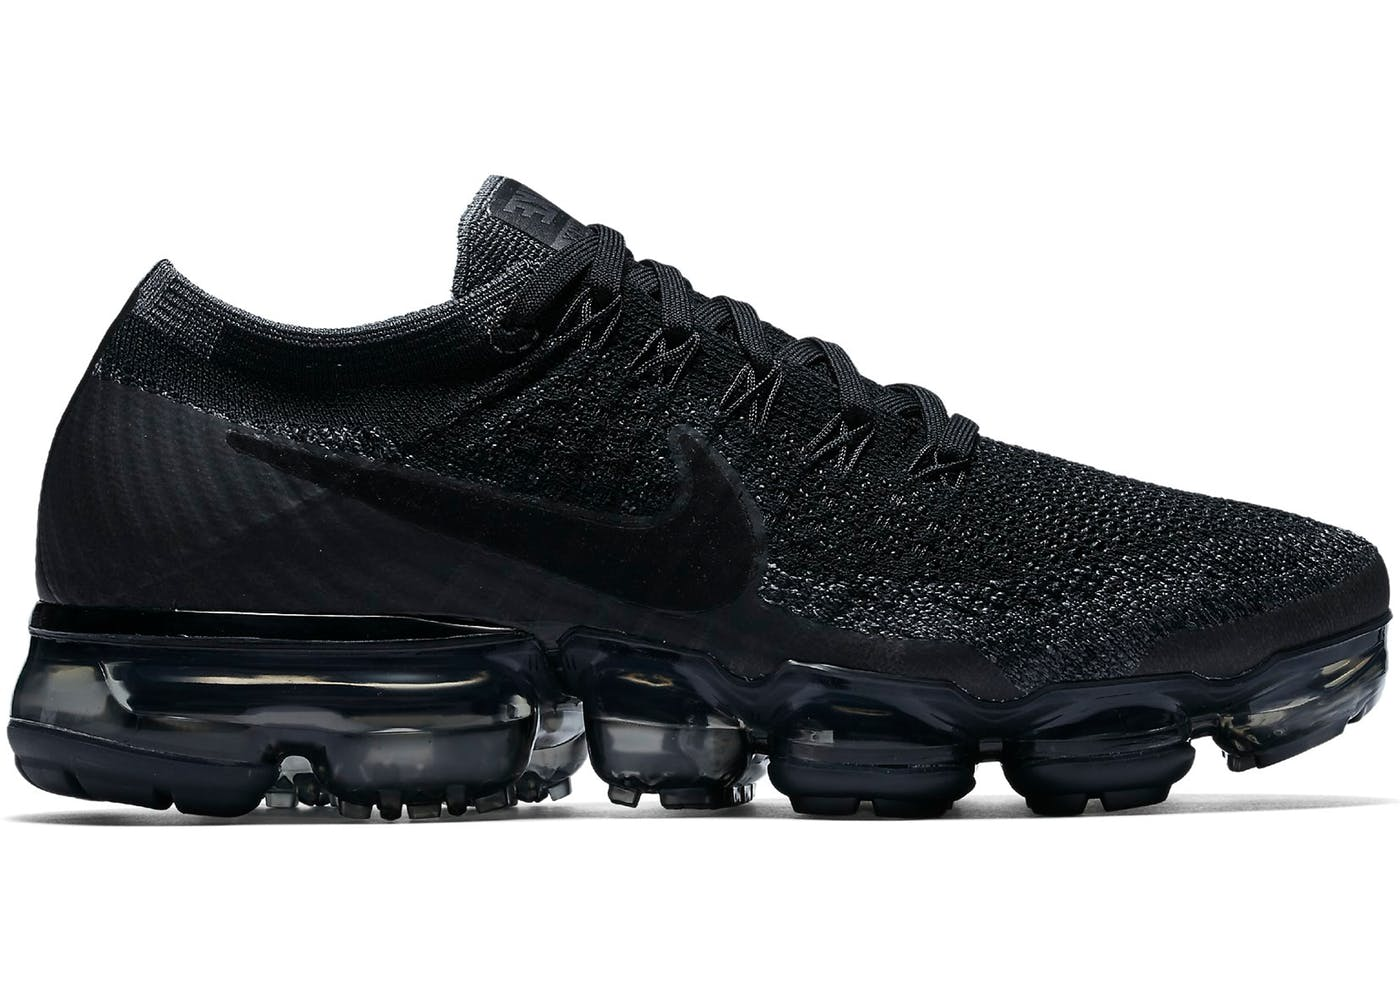 A comeback of the Garçons x Nike Vapormax for the Air Max Day